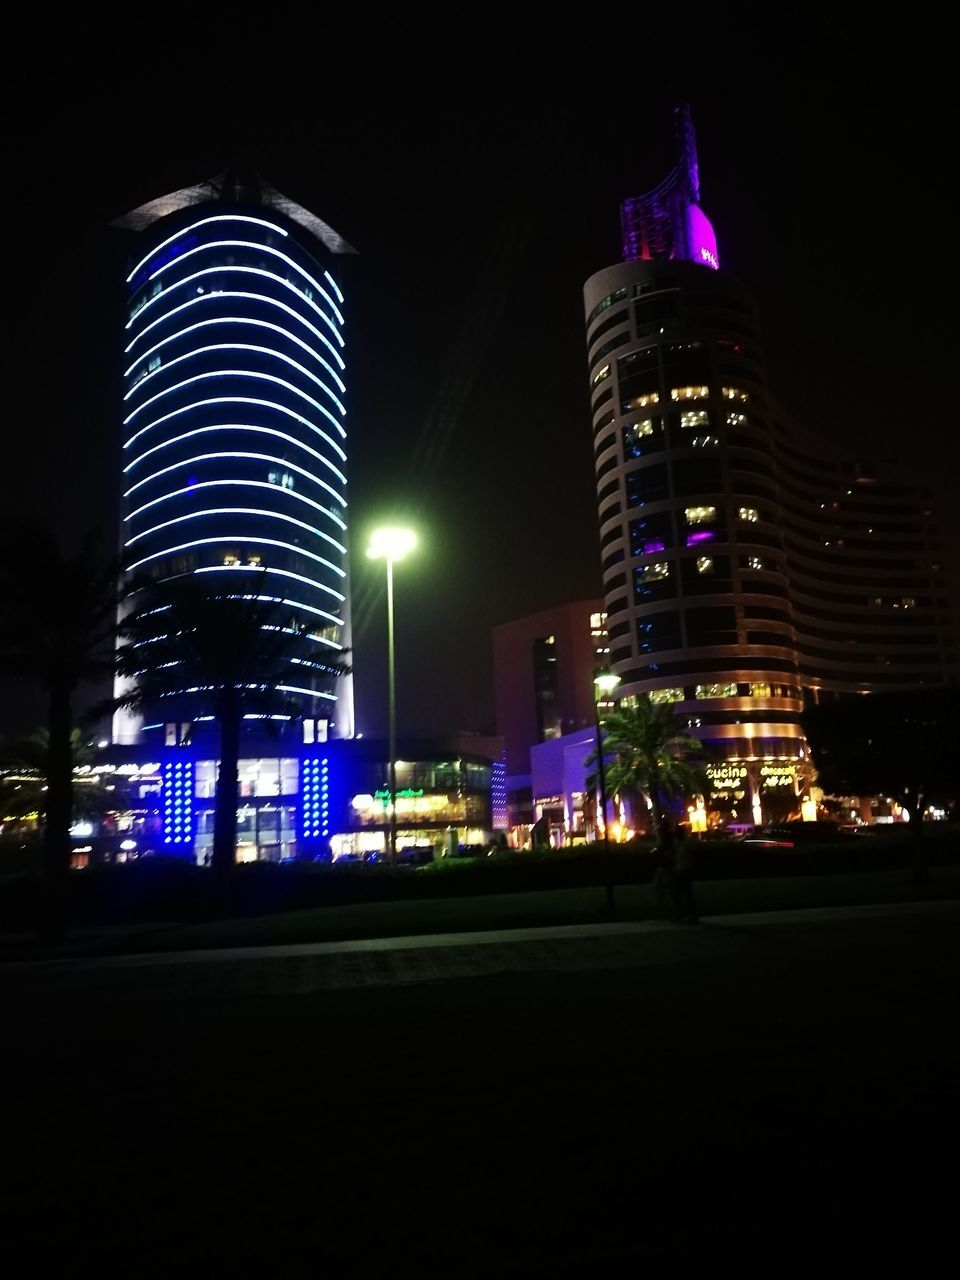 night, illuminated, building exterior, architecture, tall - high, built structure, skyscraper, city, modern, no people, low angle view, sky, outdoors, travel destinations, cityscape, urban skyline